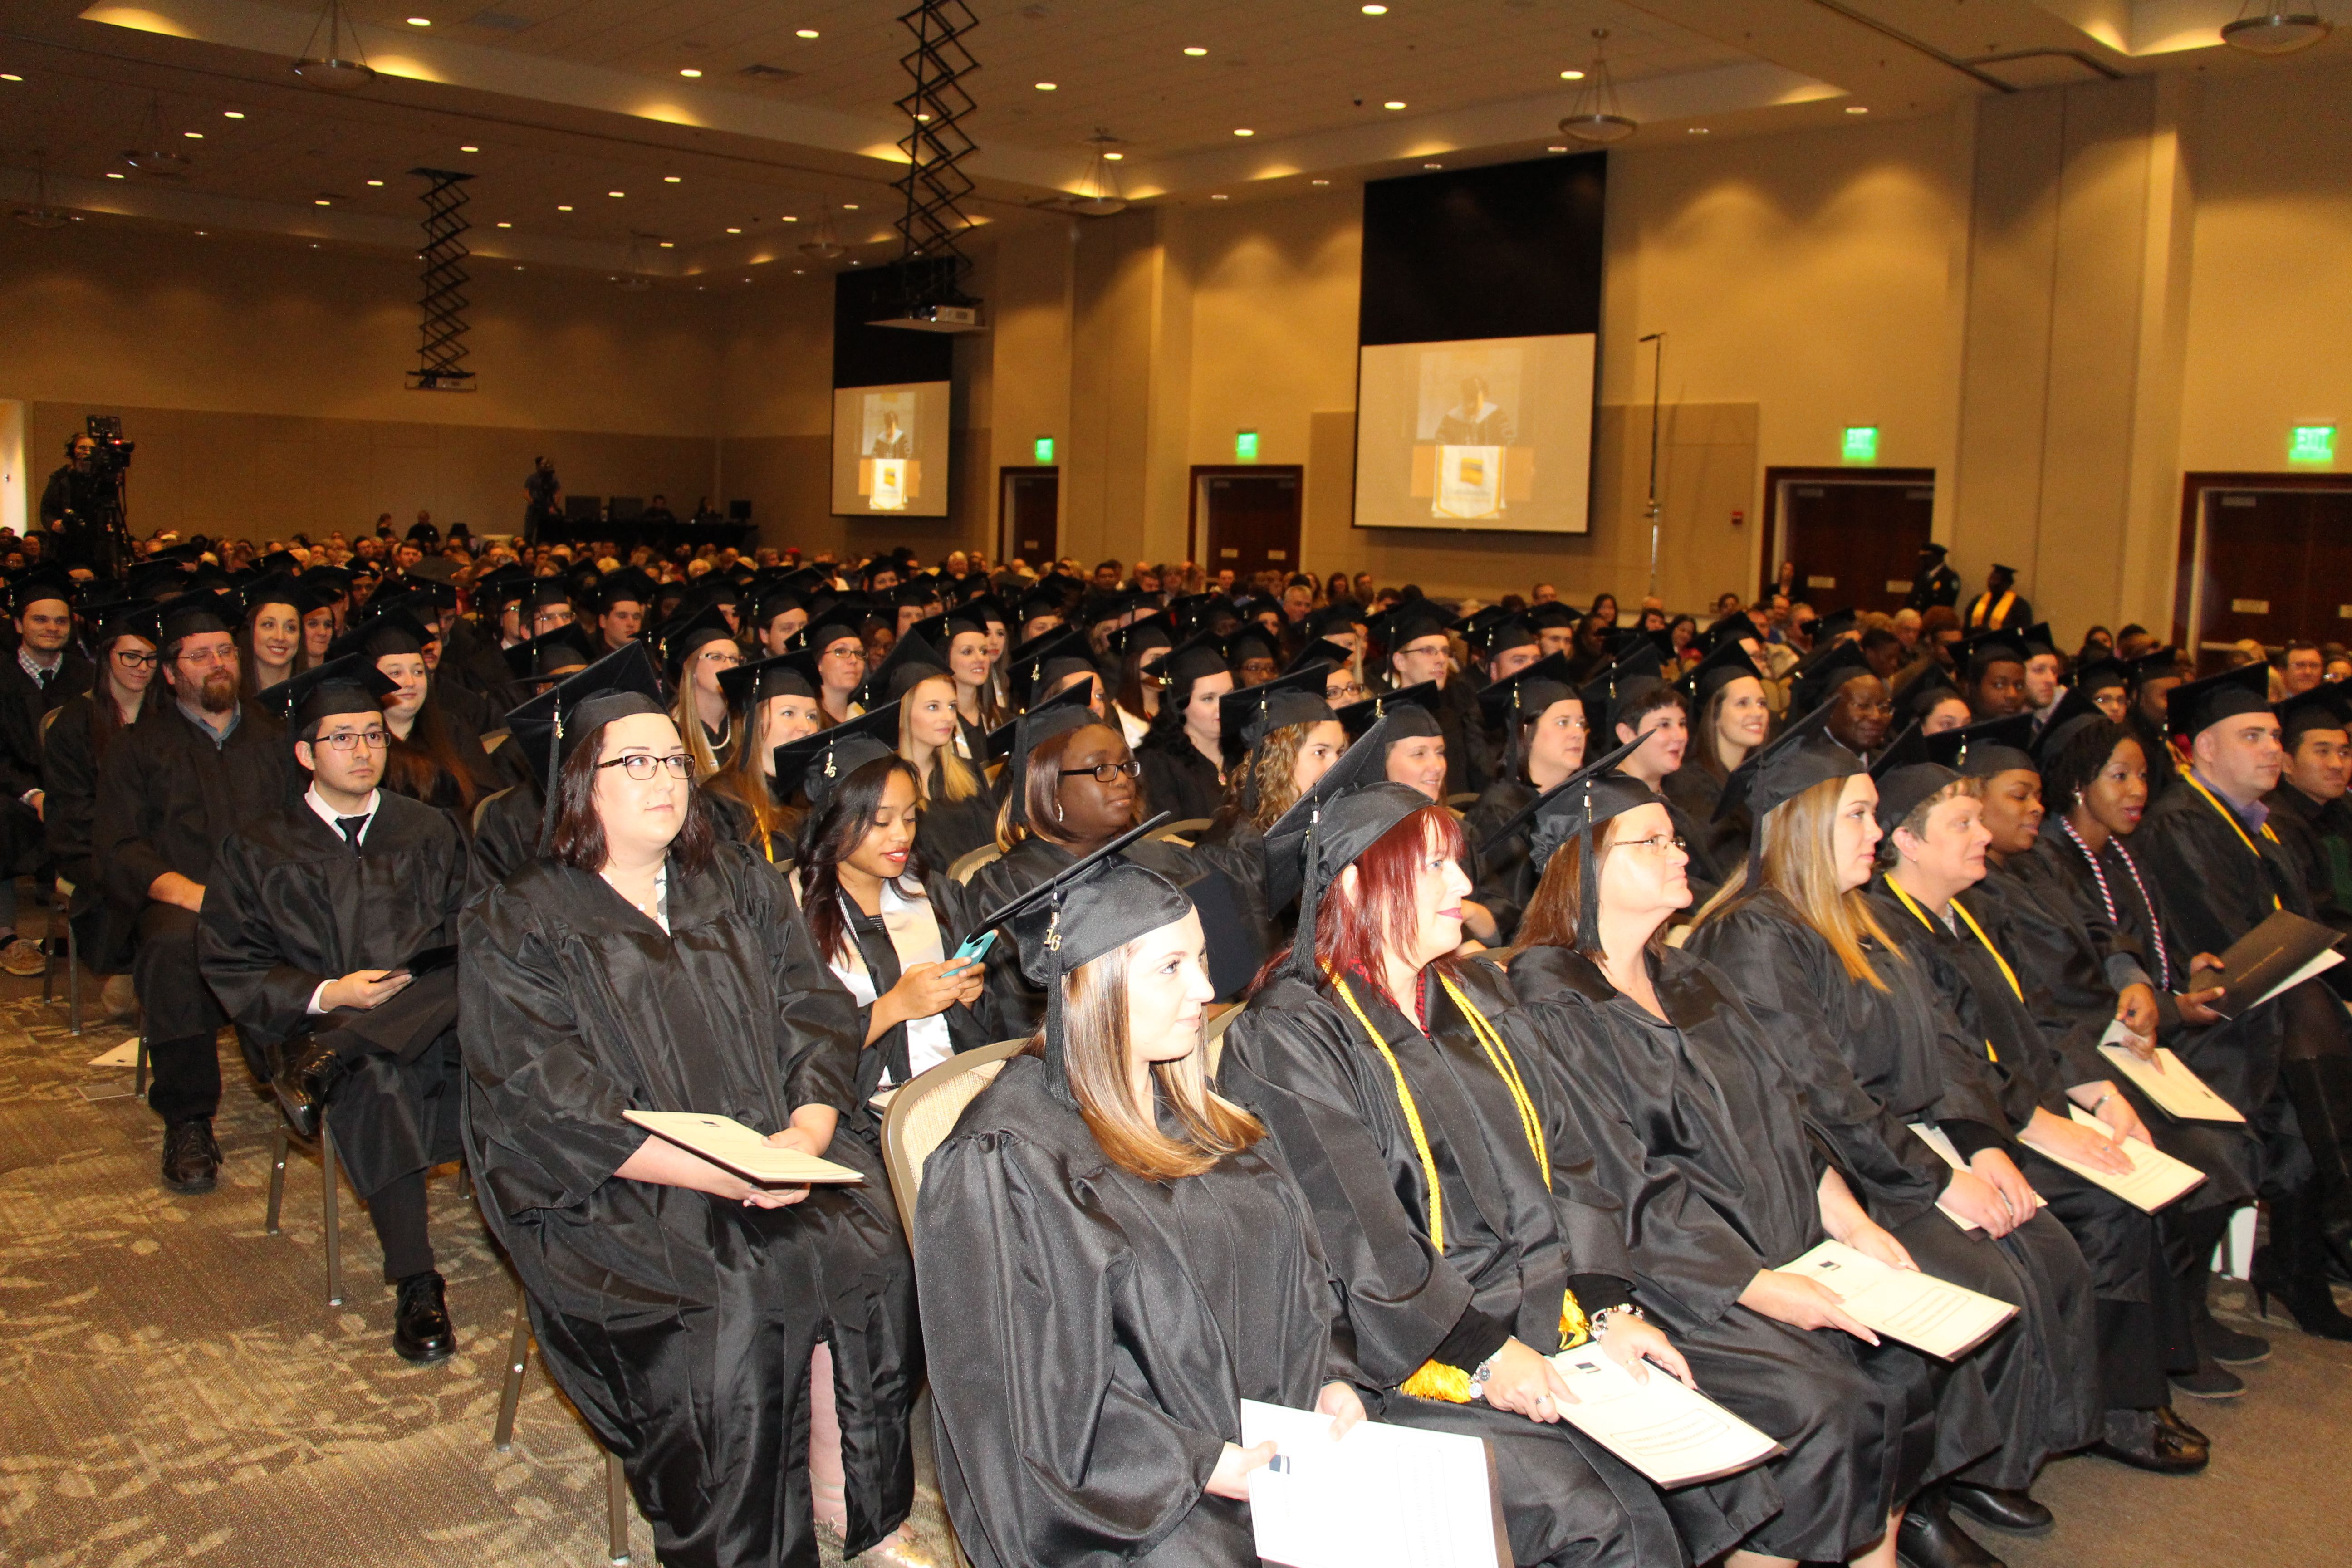 CTC Instructor Delivers Empowering Commencement Speech